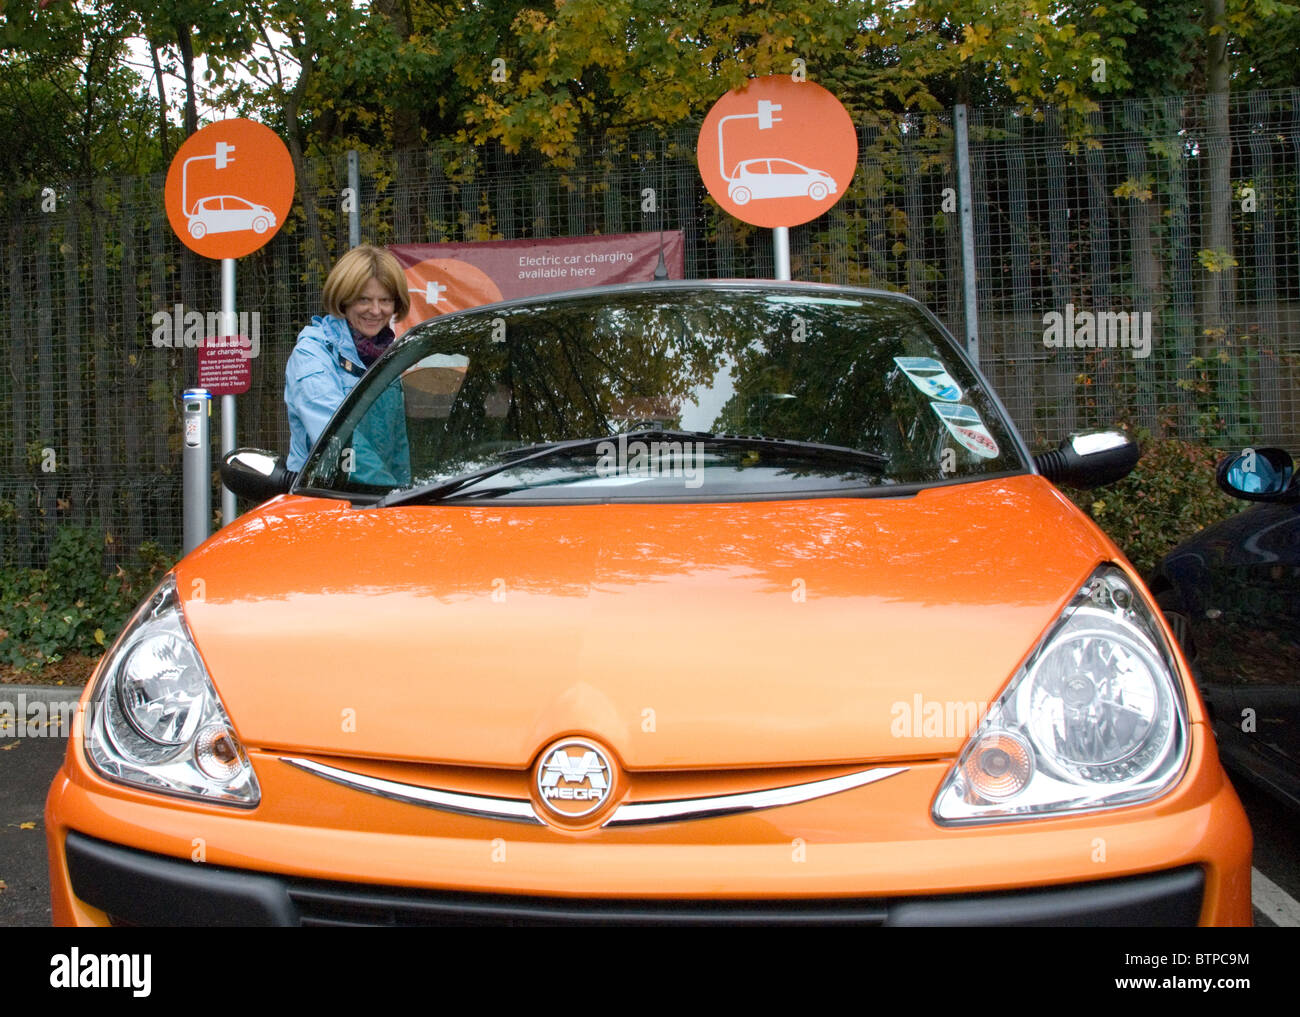 Woman getting in to electric car rented from GoGo Electric Cars free EV Elektrobay charging point Sainsbury's London - Stock Image